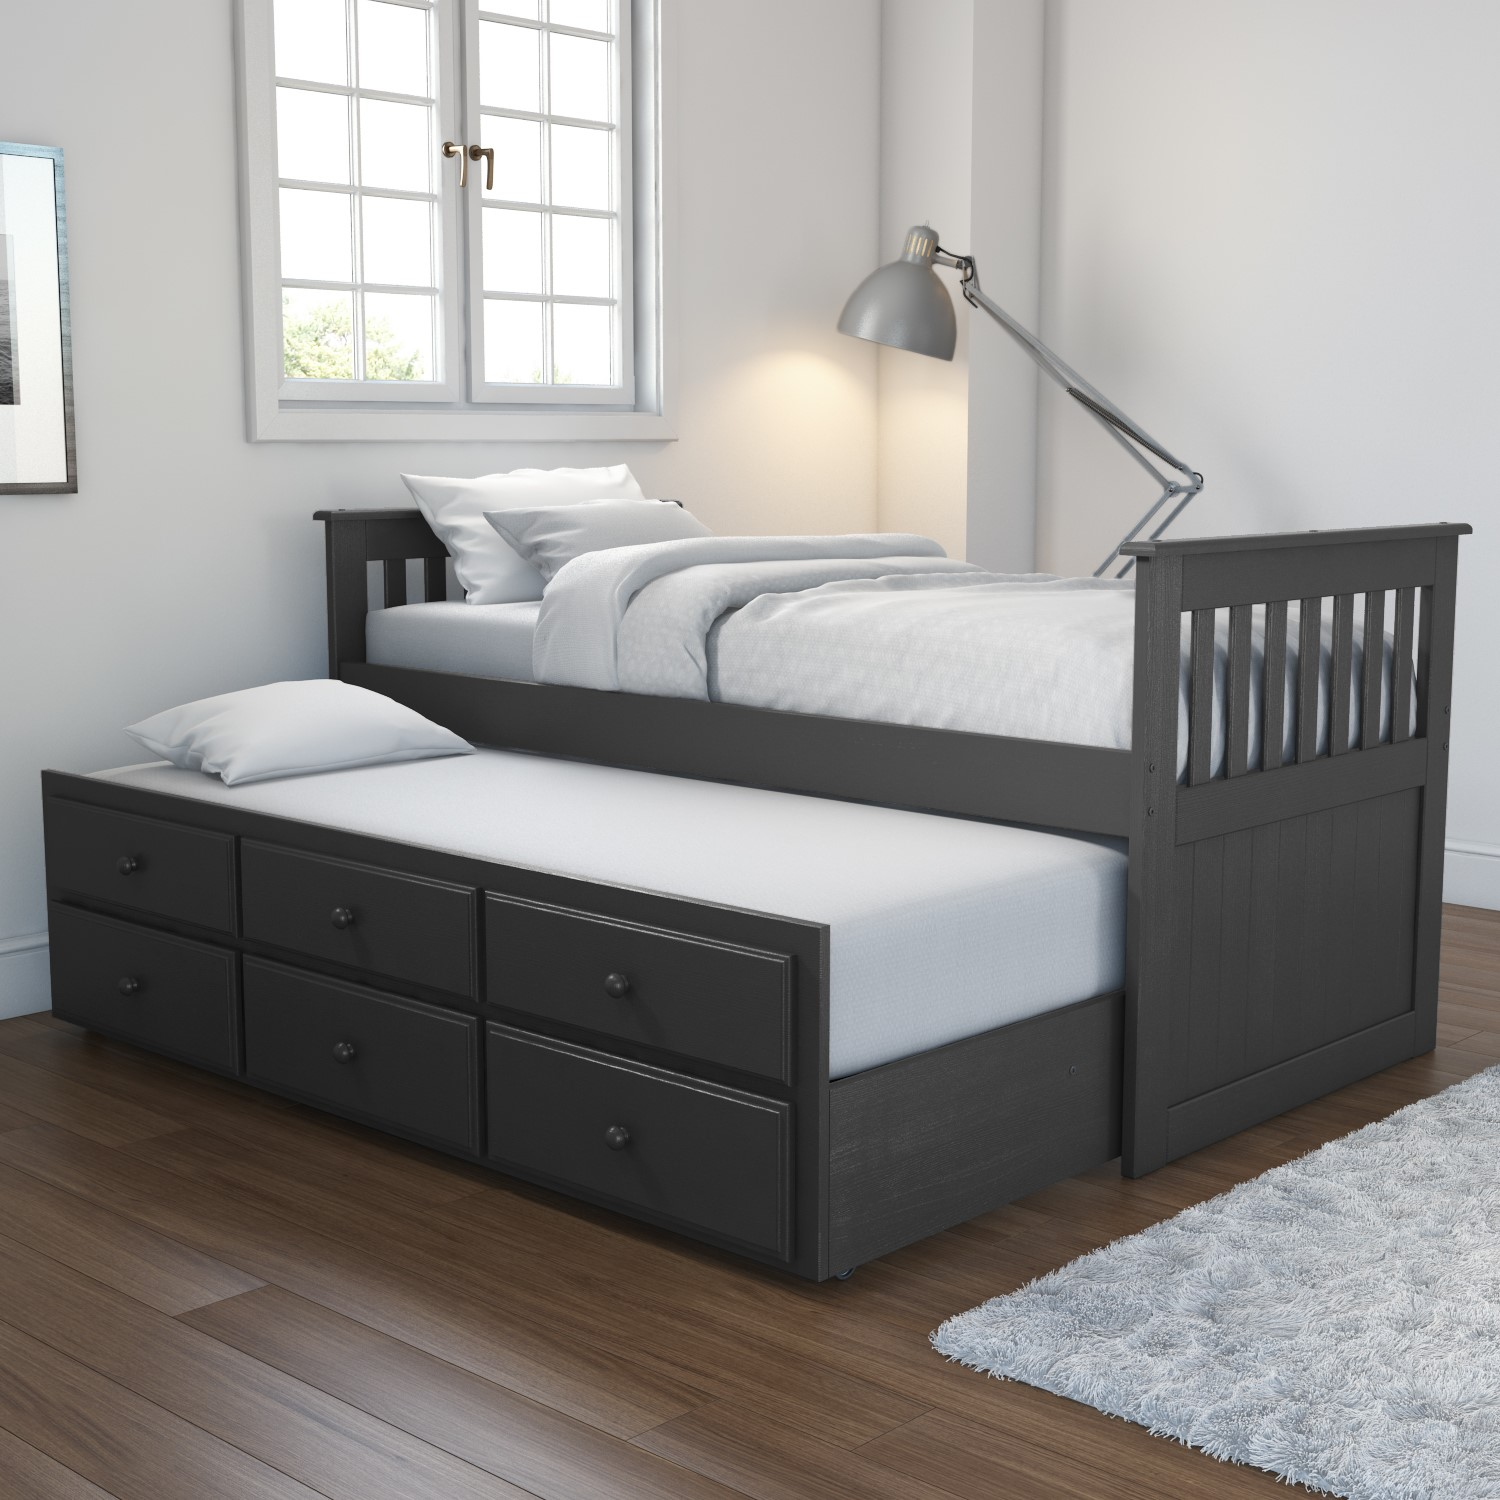 Wido White Wooden 3ft Single Bed With Pull Out Under Bed Mattress Under Trundle Home Kitchen Beds Frames Bases